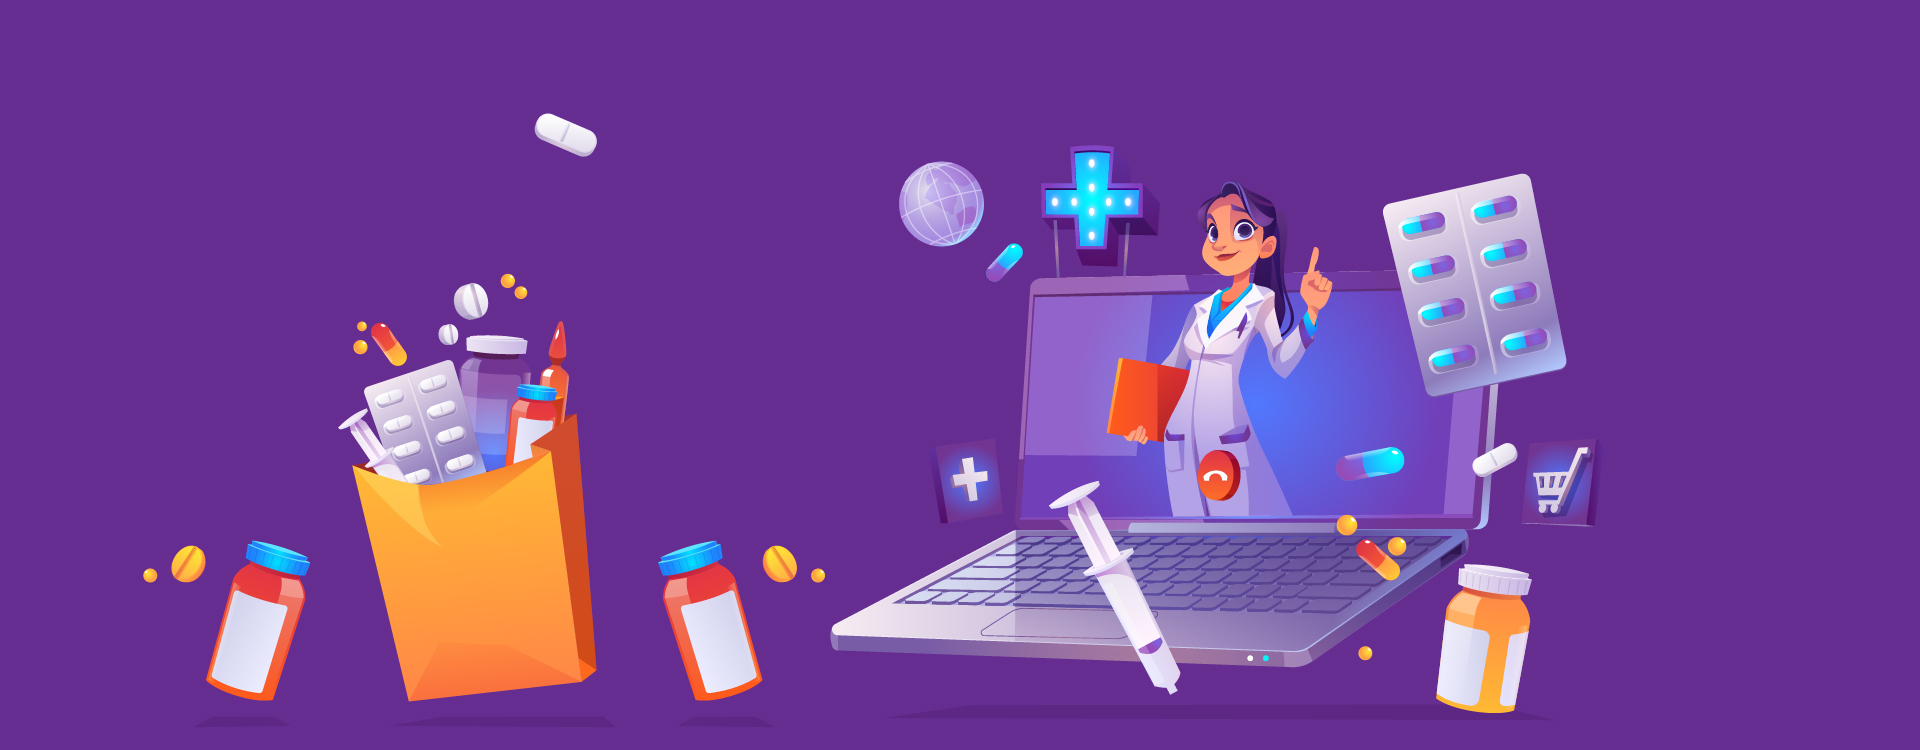 Pharma marketing in the pandemic should be tech-driven to induce personal connections.